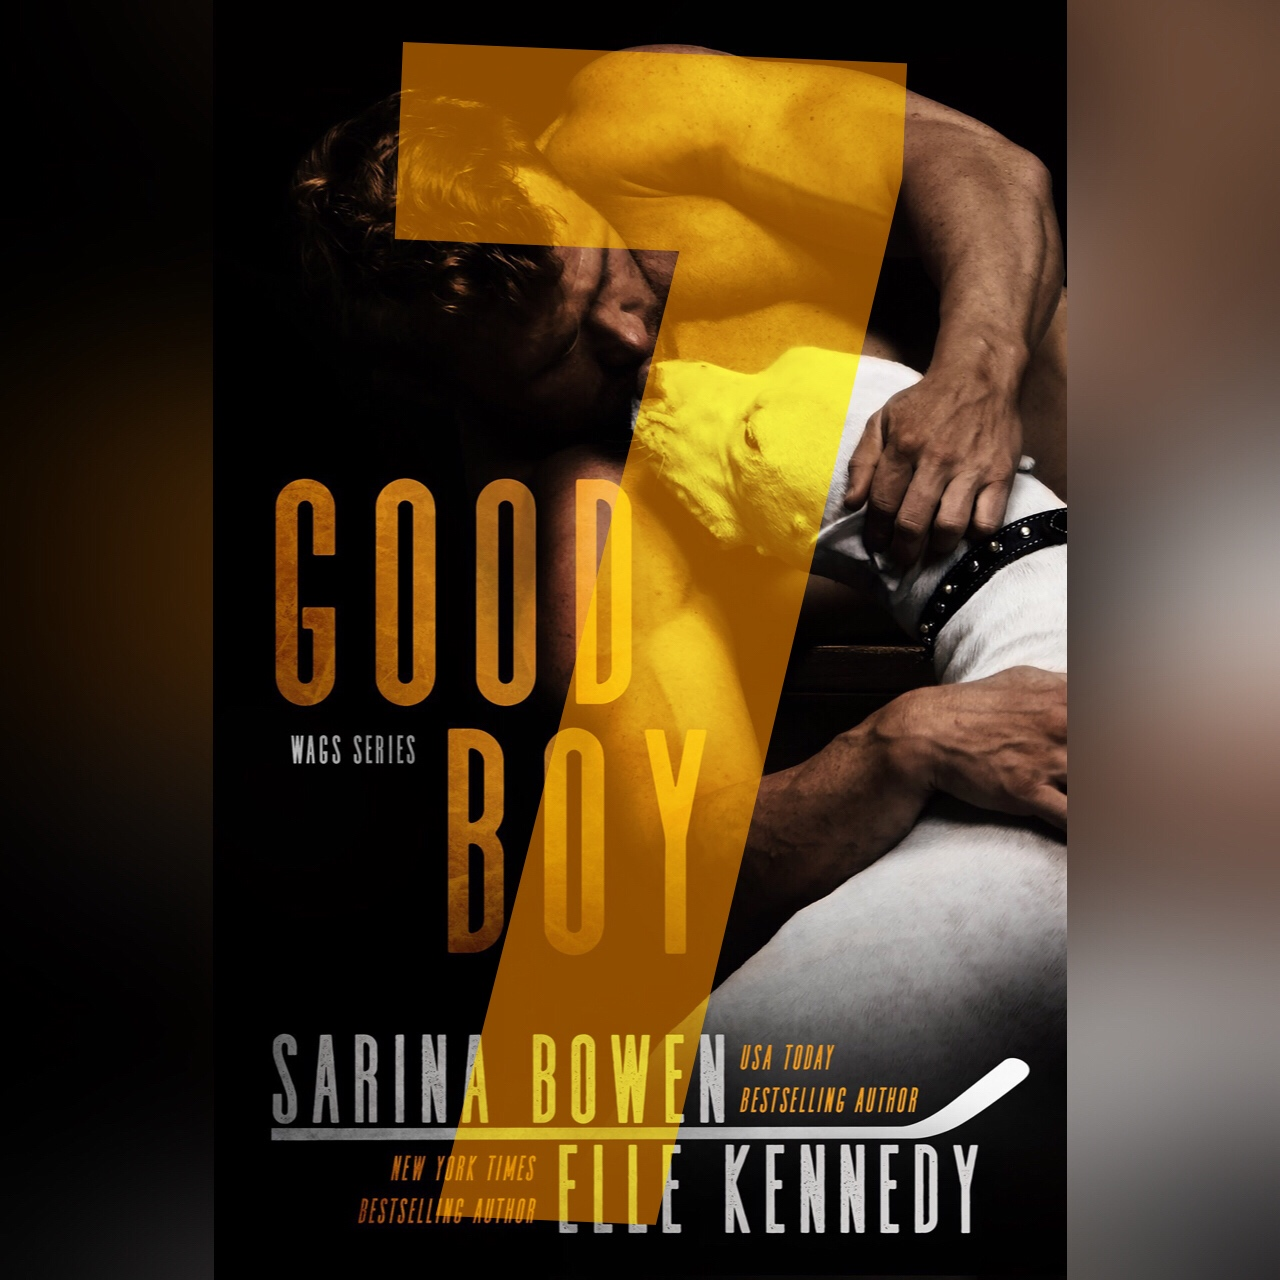 Good Boy by Sarina Bowen